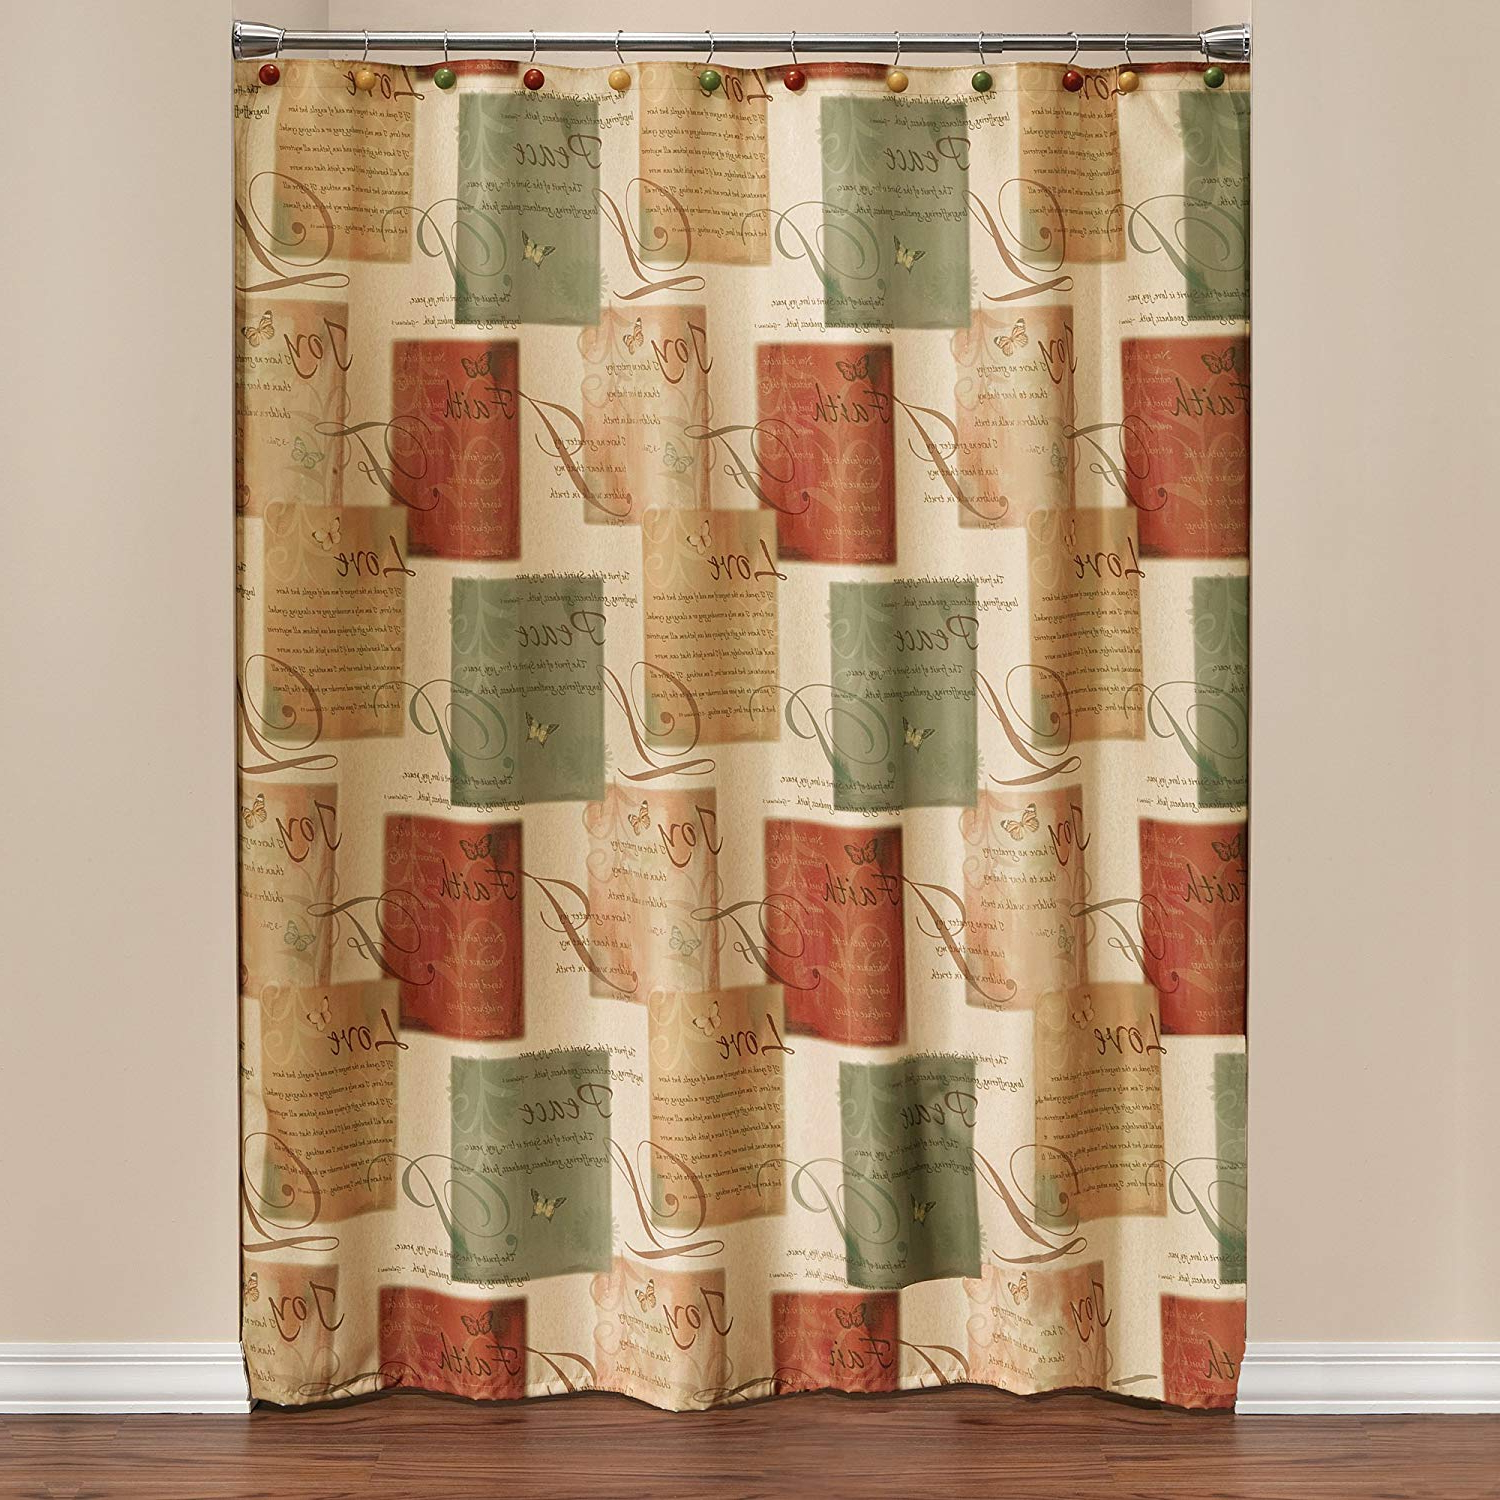 2020 Tranquility Curtain Tier Pairs Regarding Skl Homesaturday Knight Ltd (View 20 of 20)